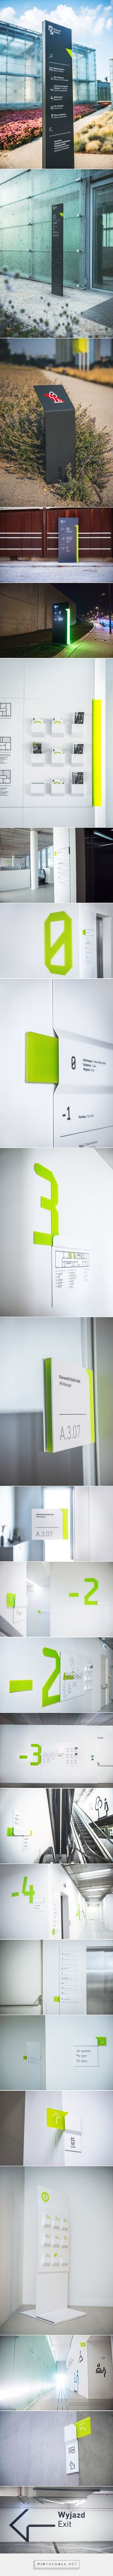 Wayfinding system in Silesian Museum on Behance - created via…